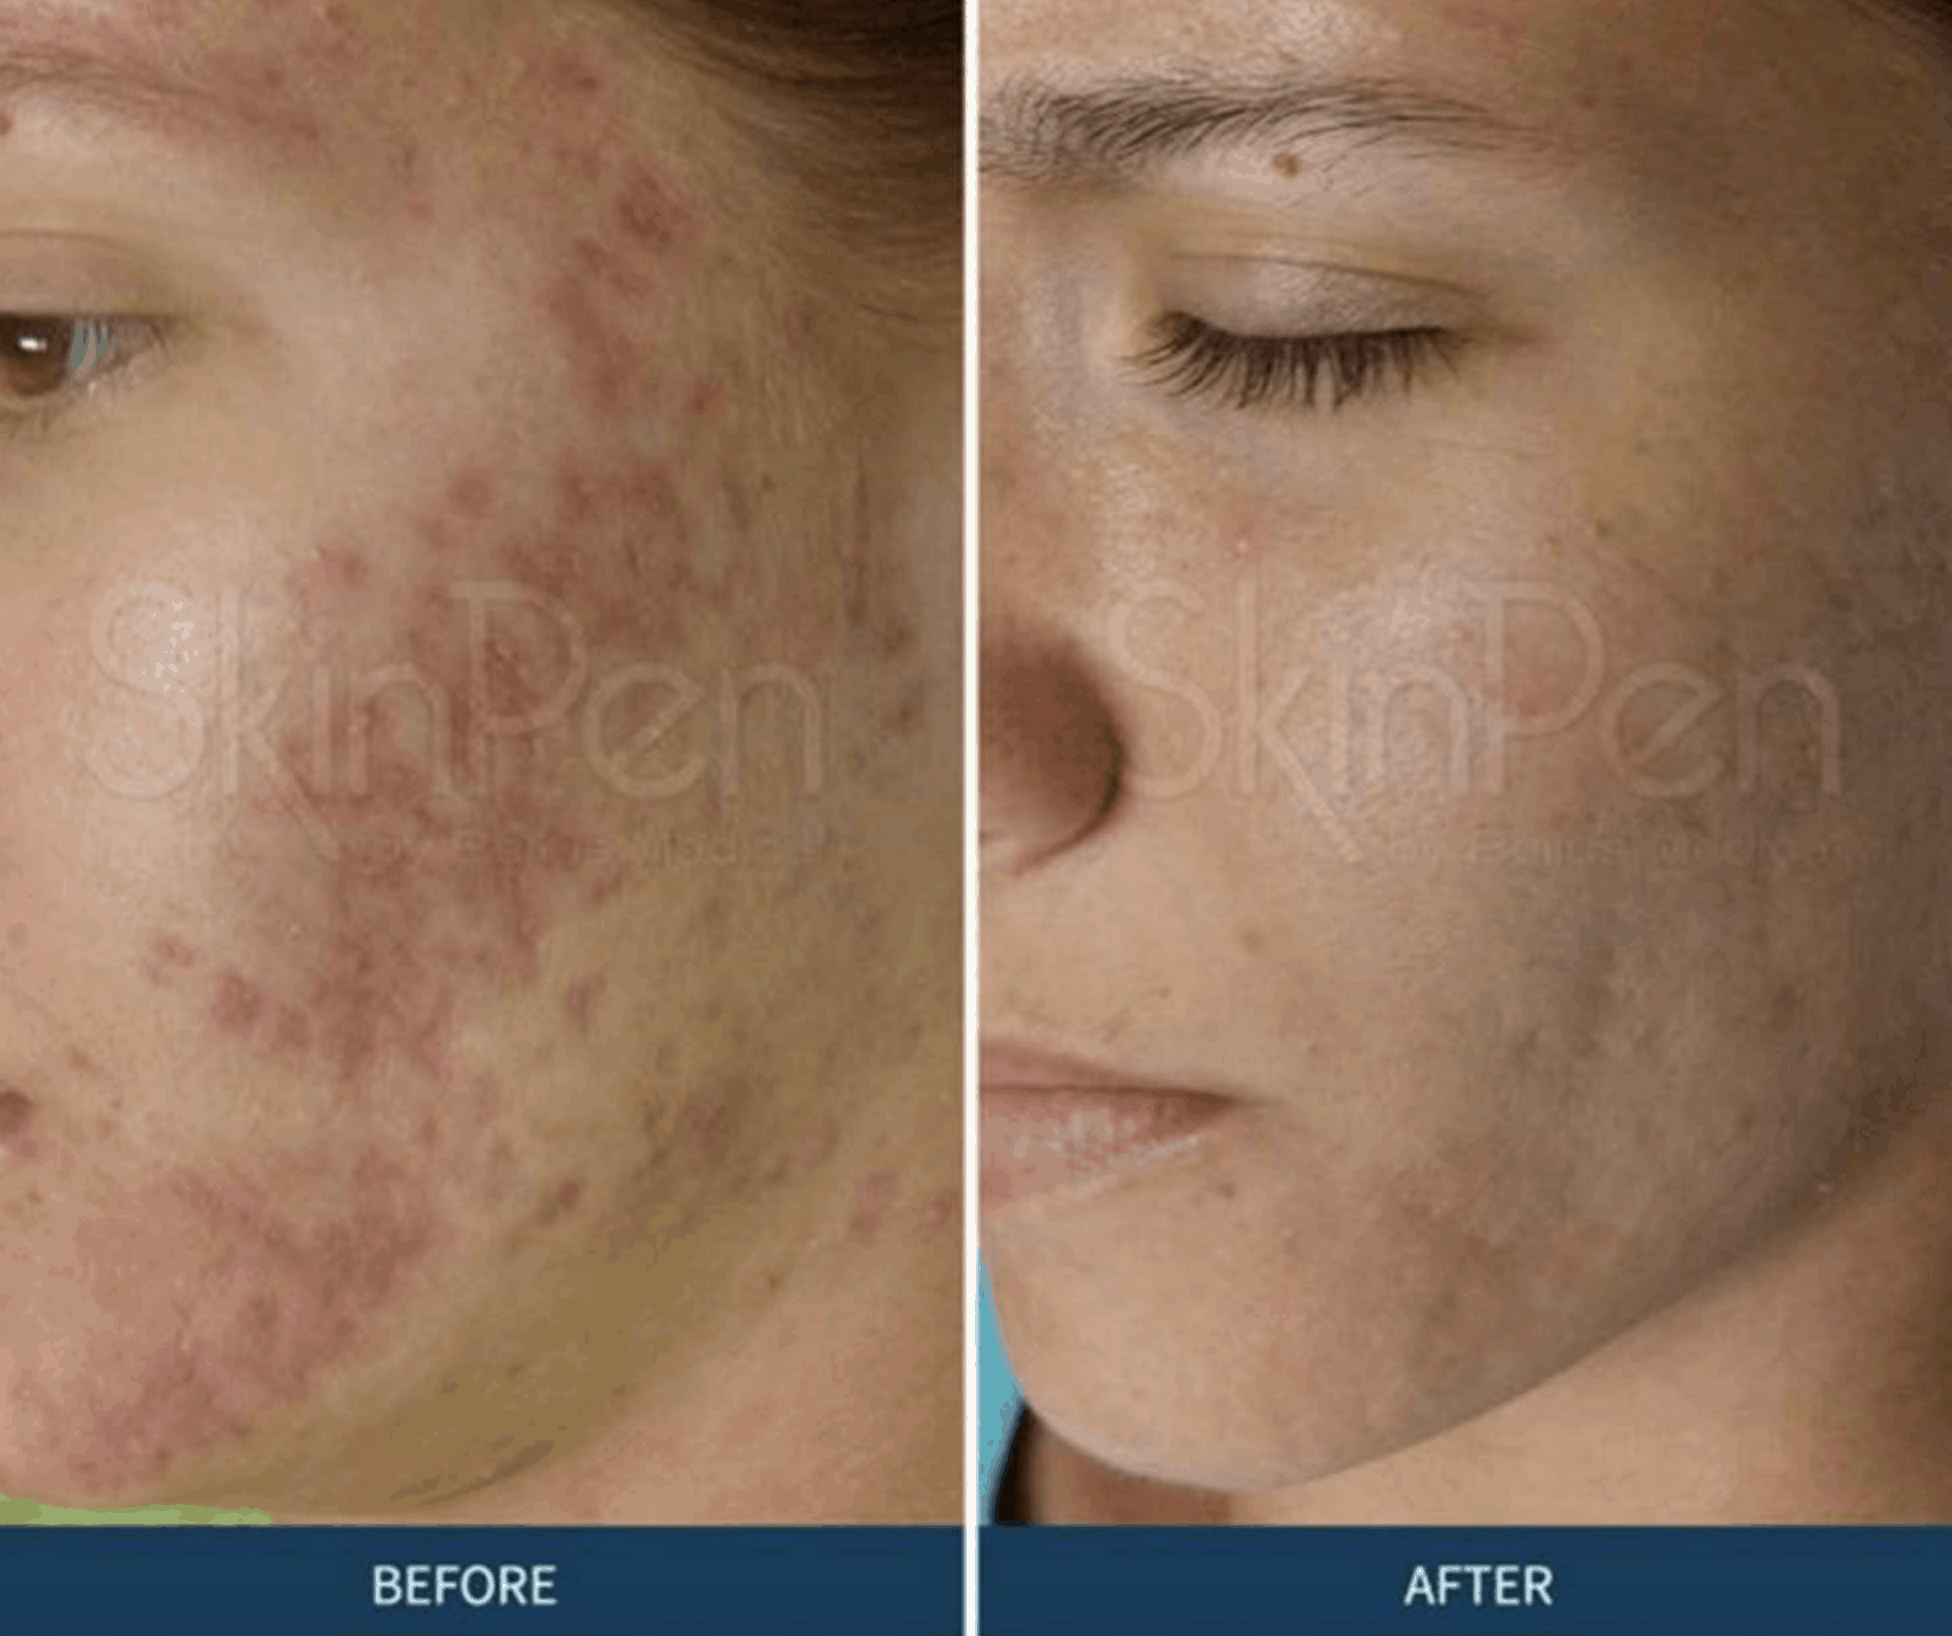 SkinPen Collagen Induction Therap